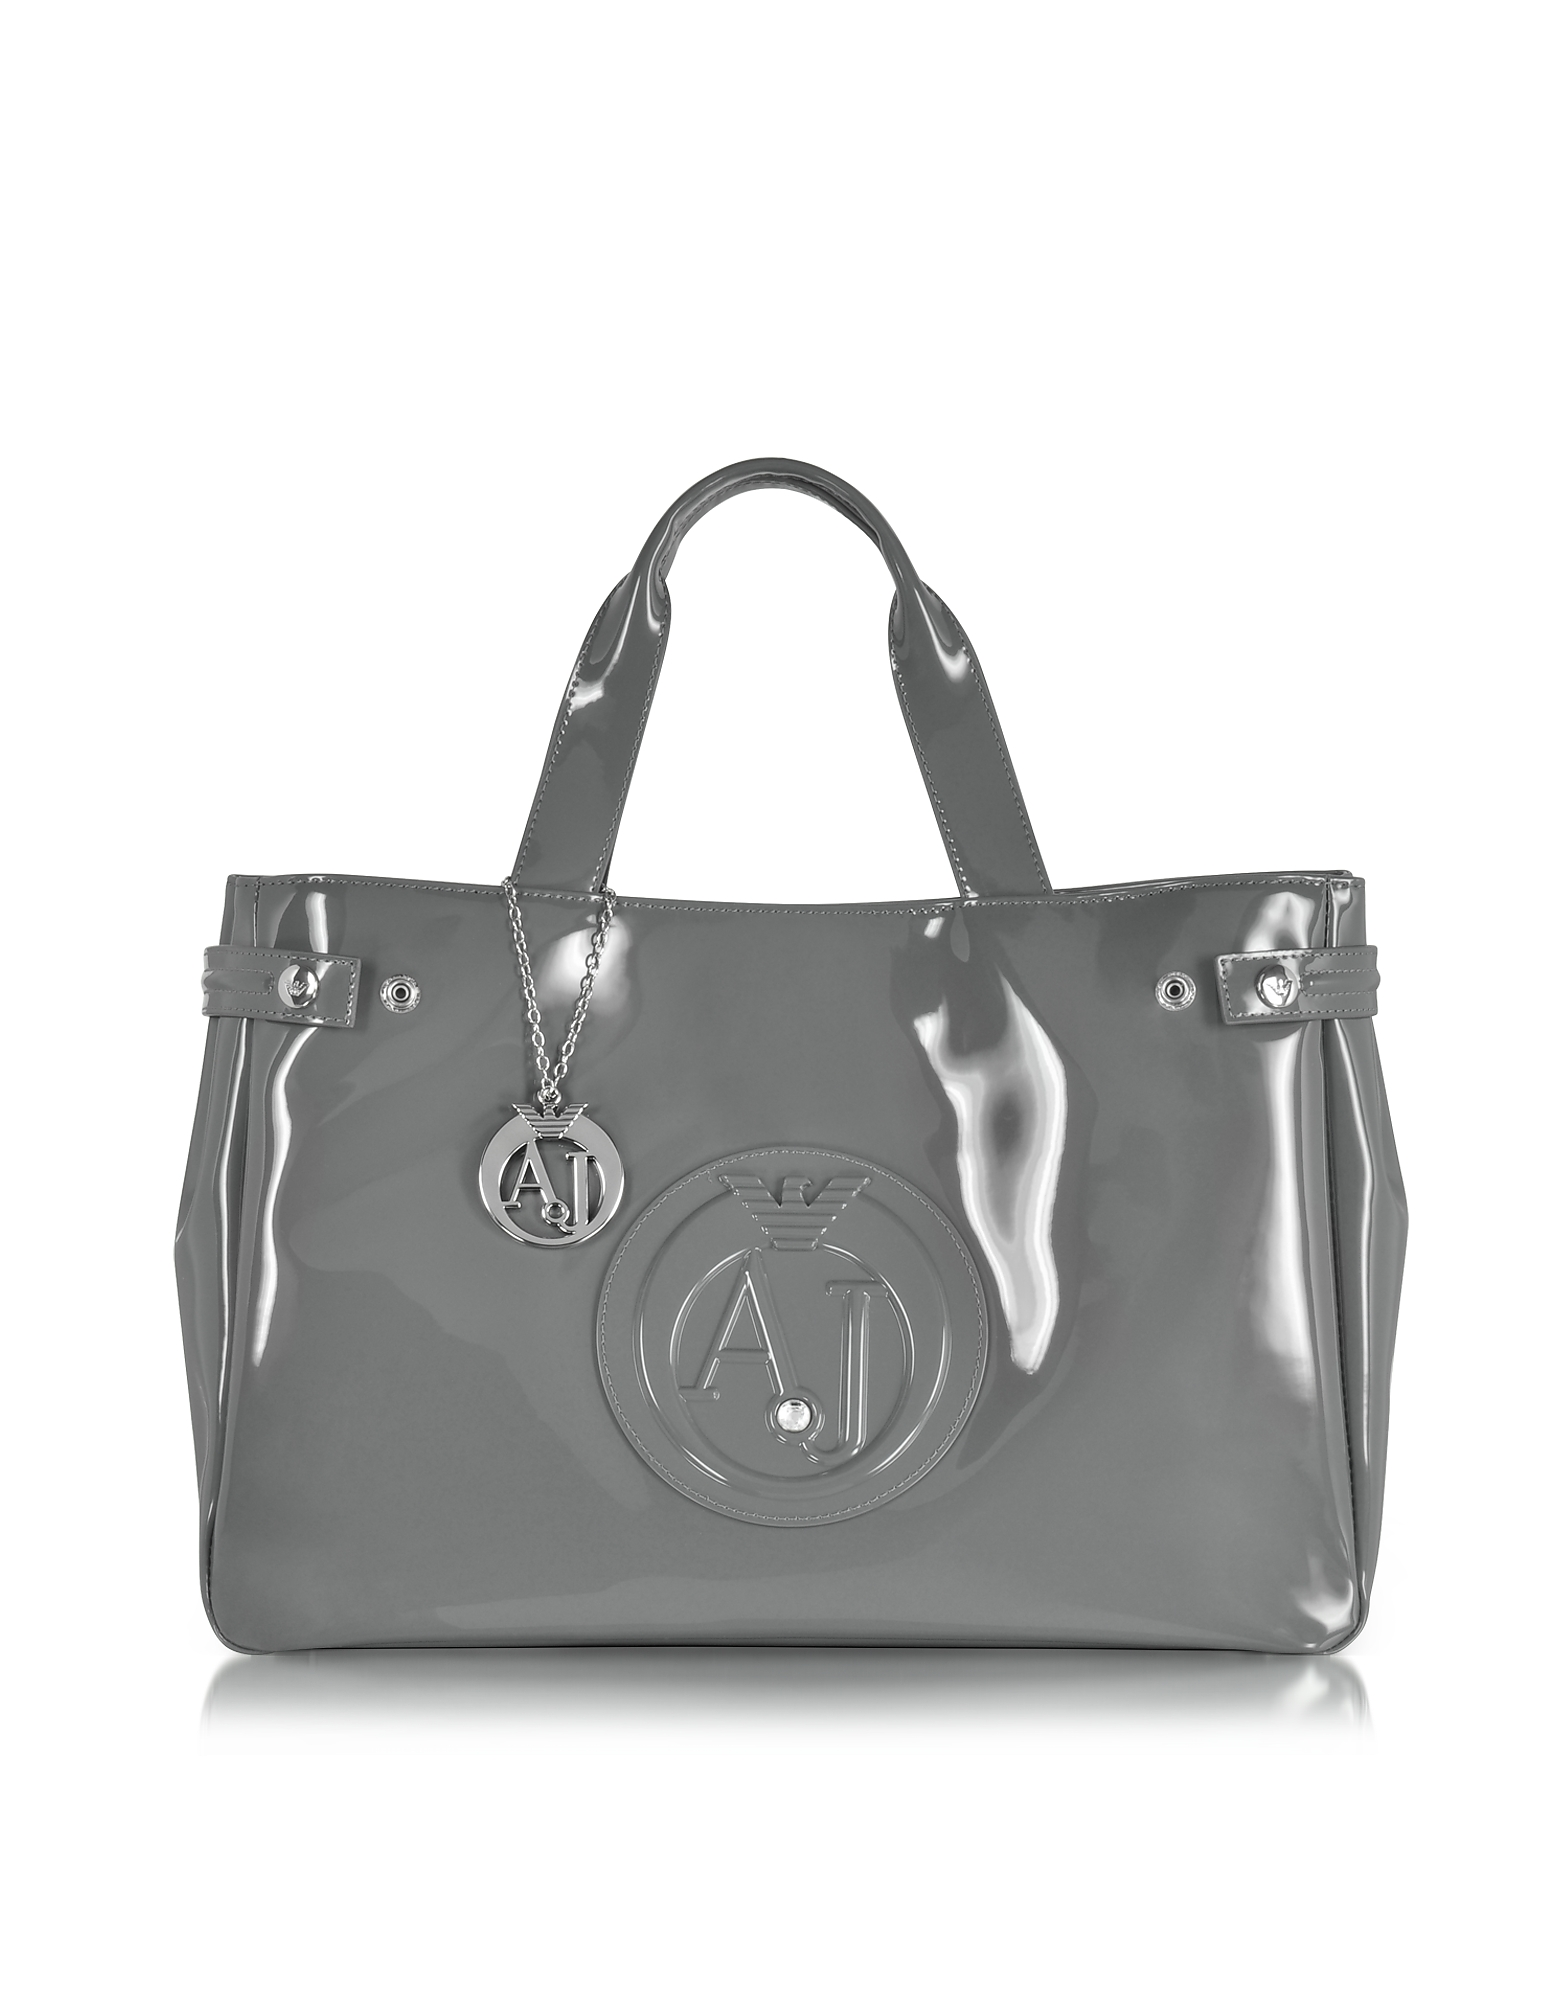 Armani Jeans Handbags, Large Gray Faux Patent Leather Tote Bag